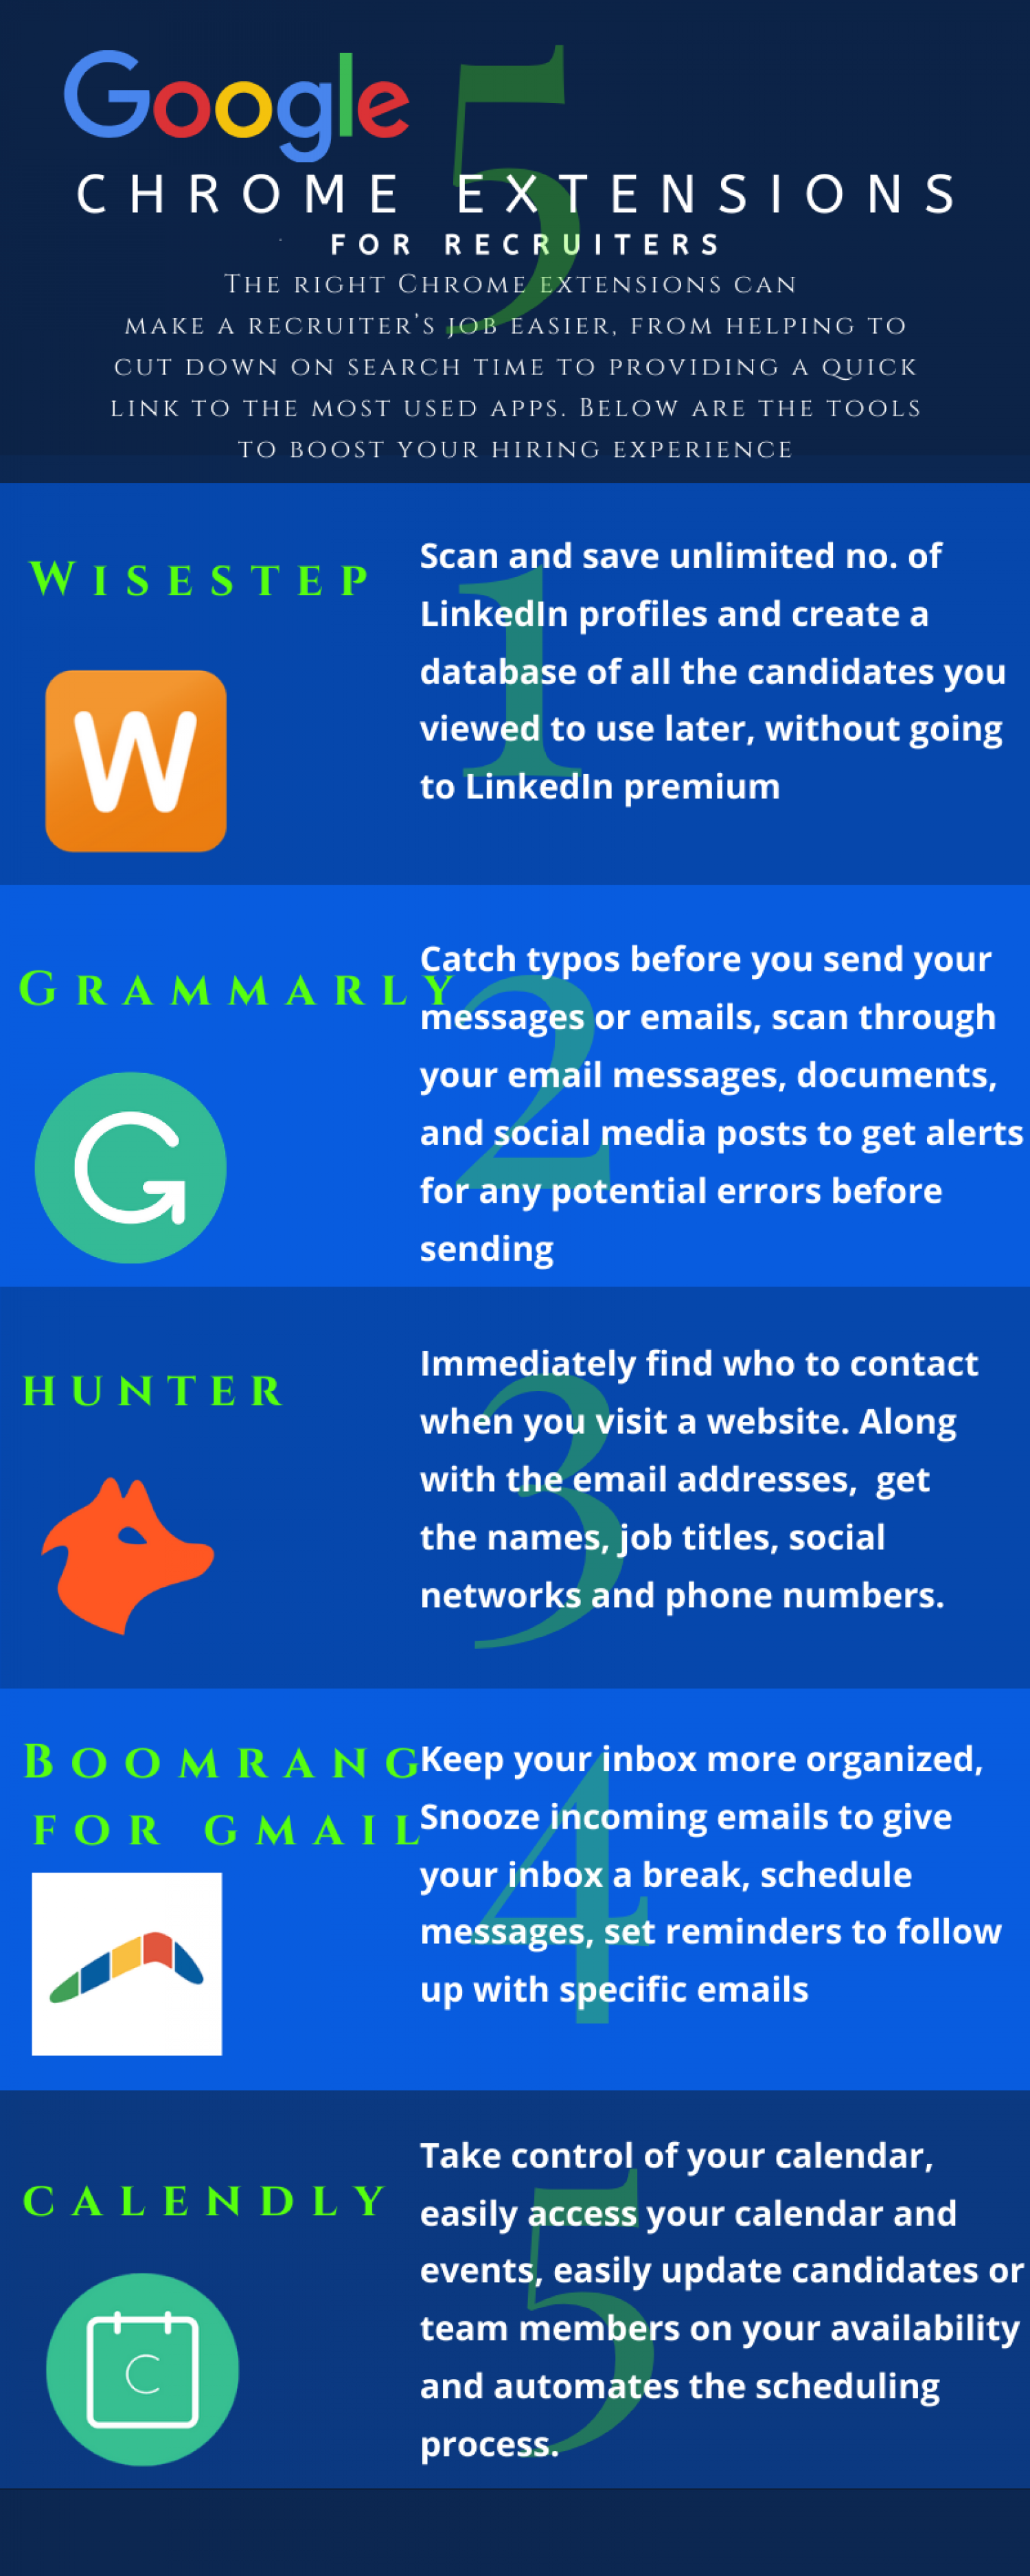 Chrome Extensions for Recruiters Infographic